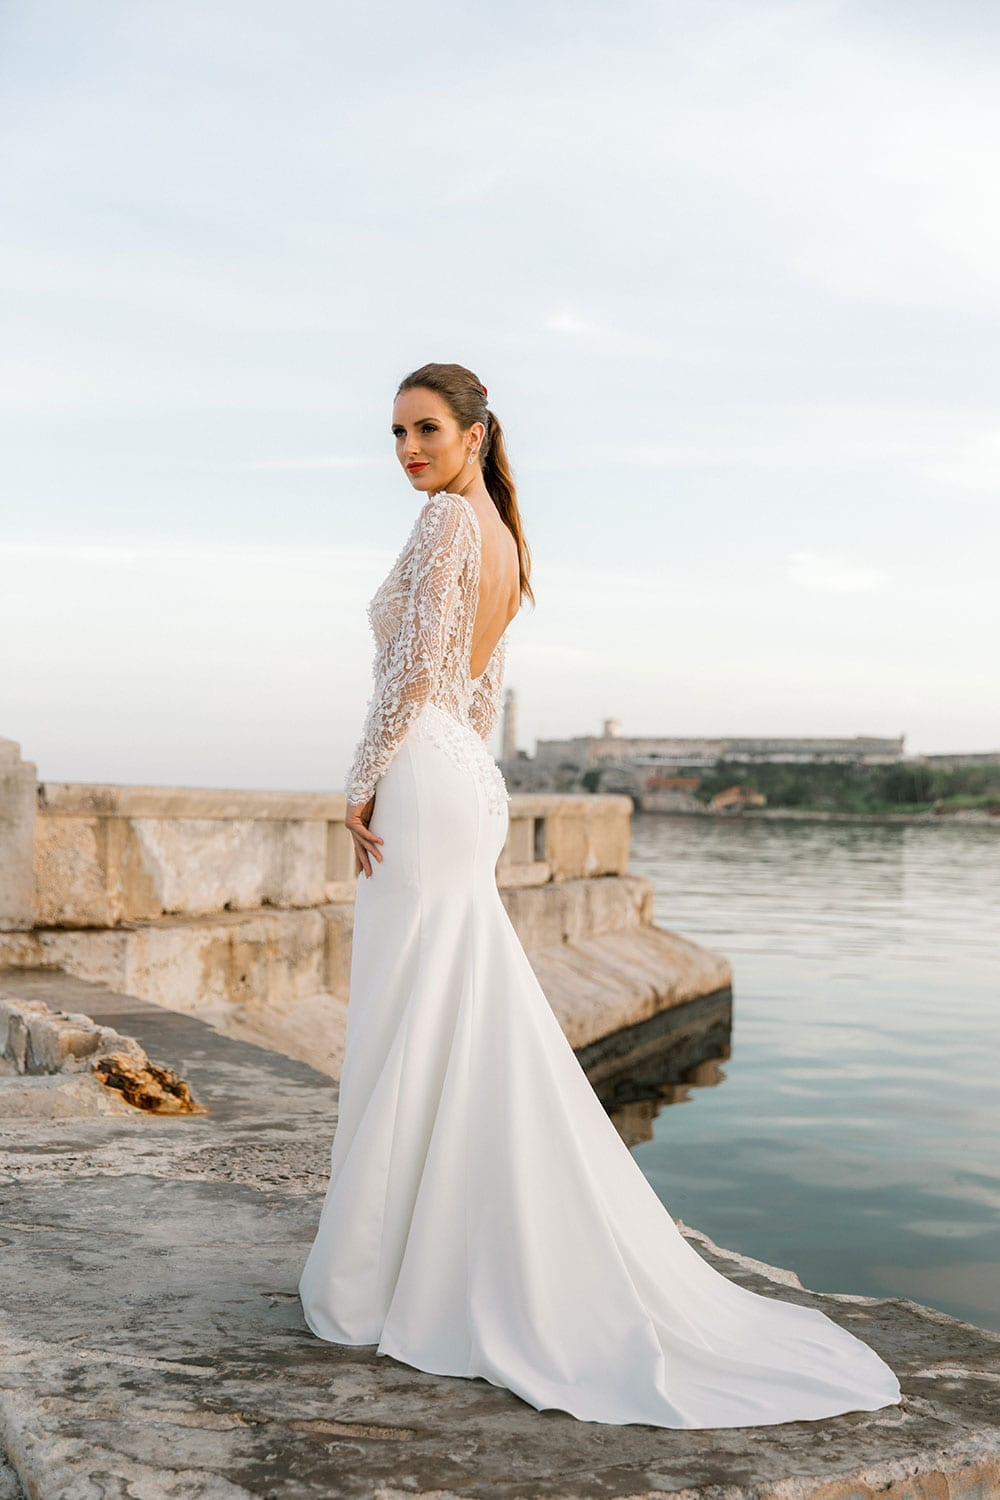 Model wearing Vinka Design Angela Wedding Dress, Fitted Wedding Gown with Lace Bodice posed next to the water with dress showing train, in Havana